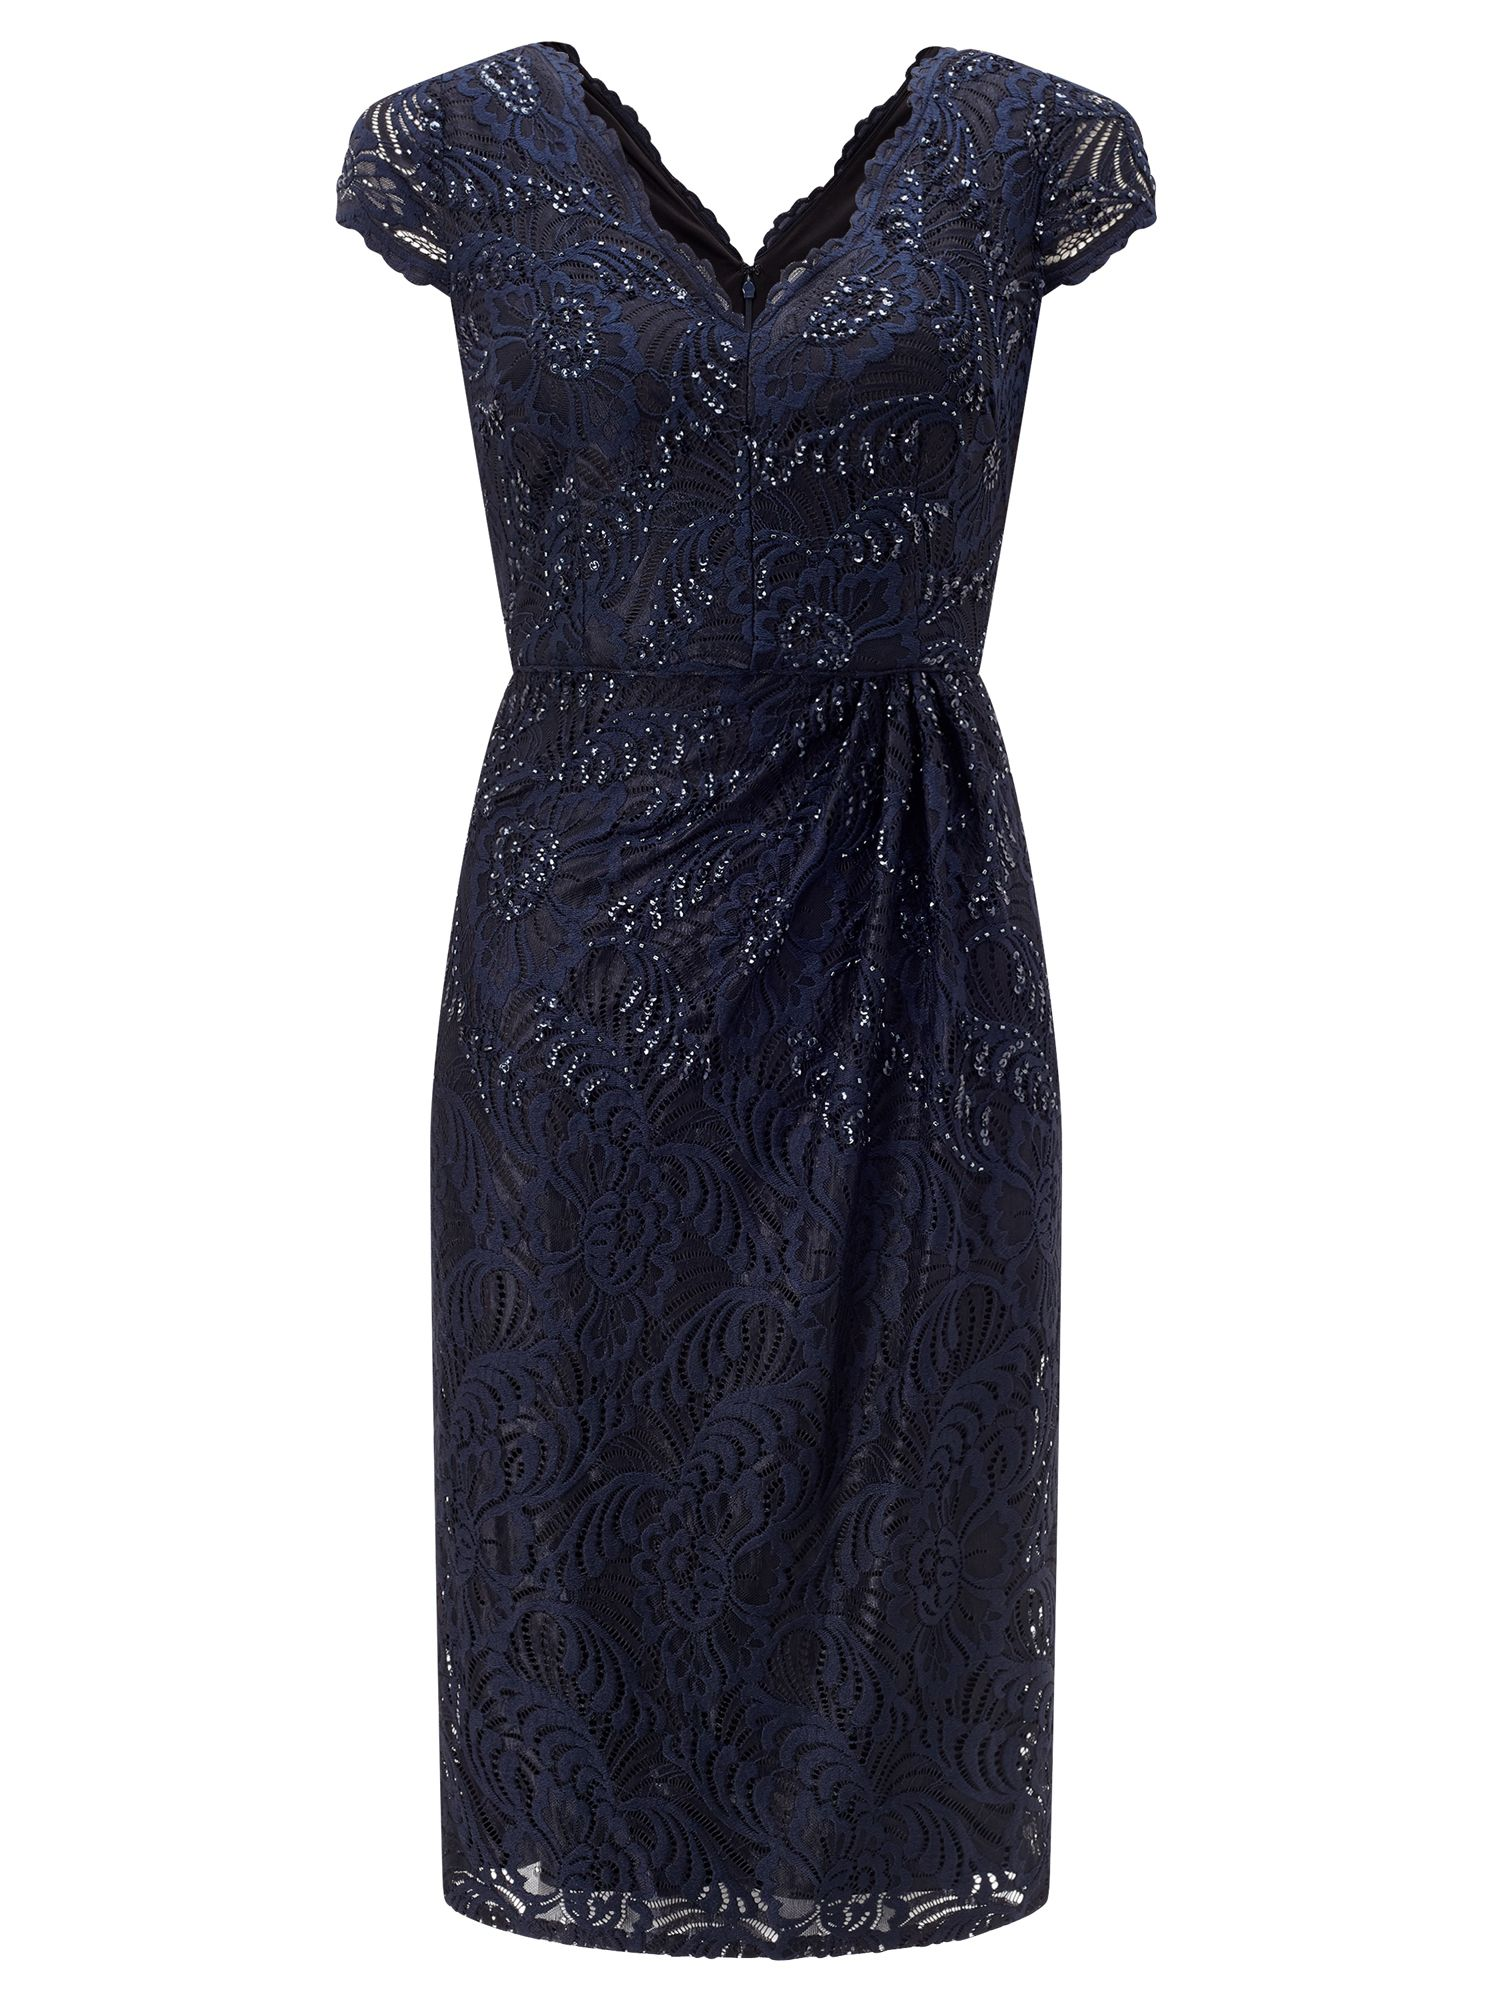 Adrianna Papell Sequin & lace dress, Dark Blue